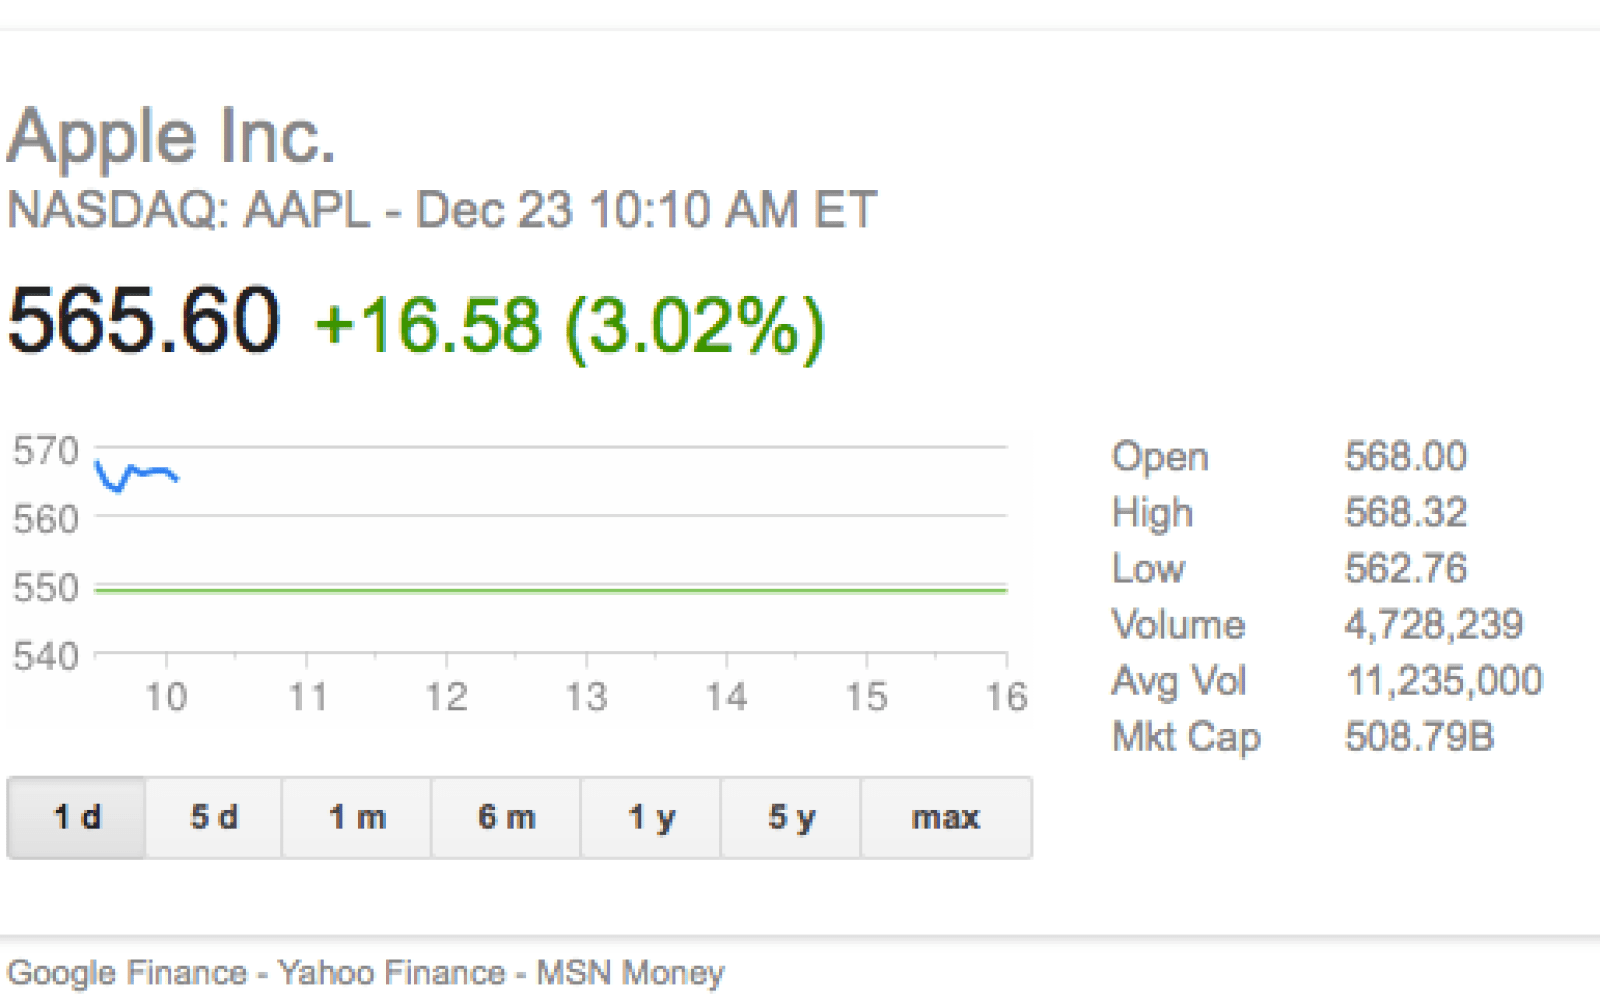 AAPL stock more than 3 percent up on China Mobile news - 9to5Mac